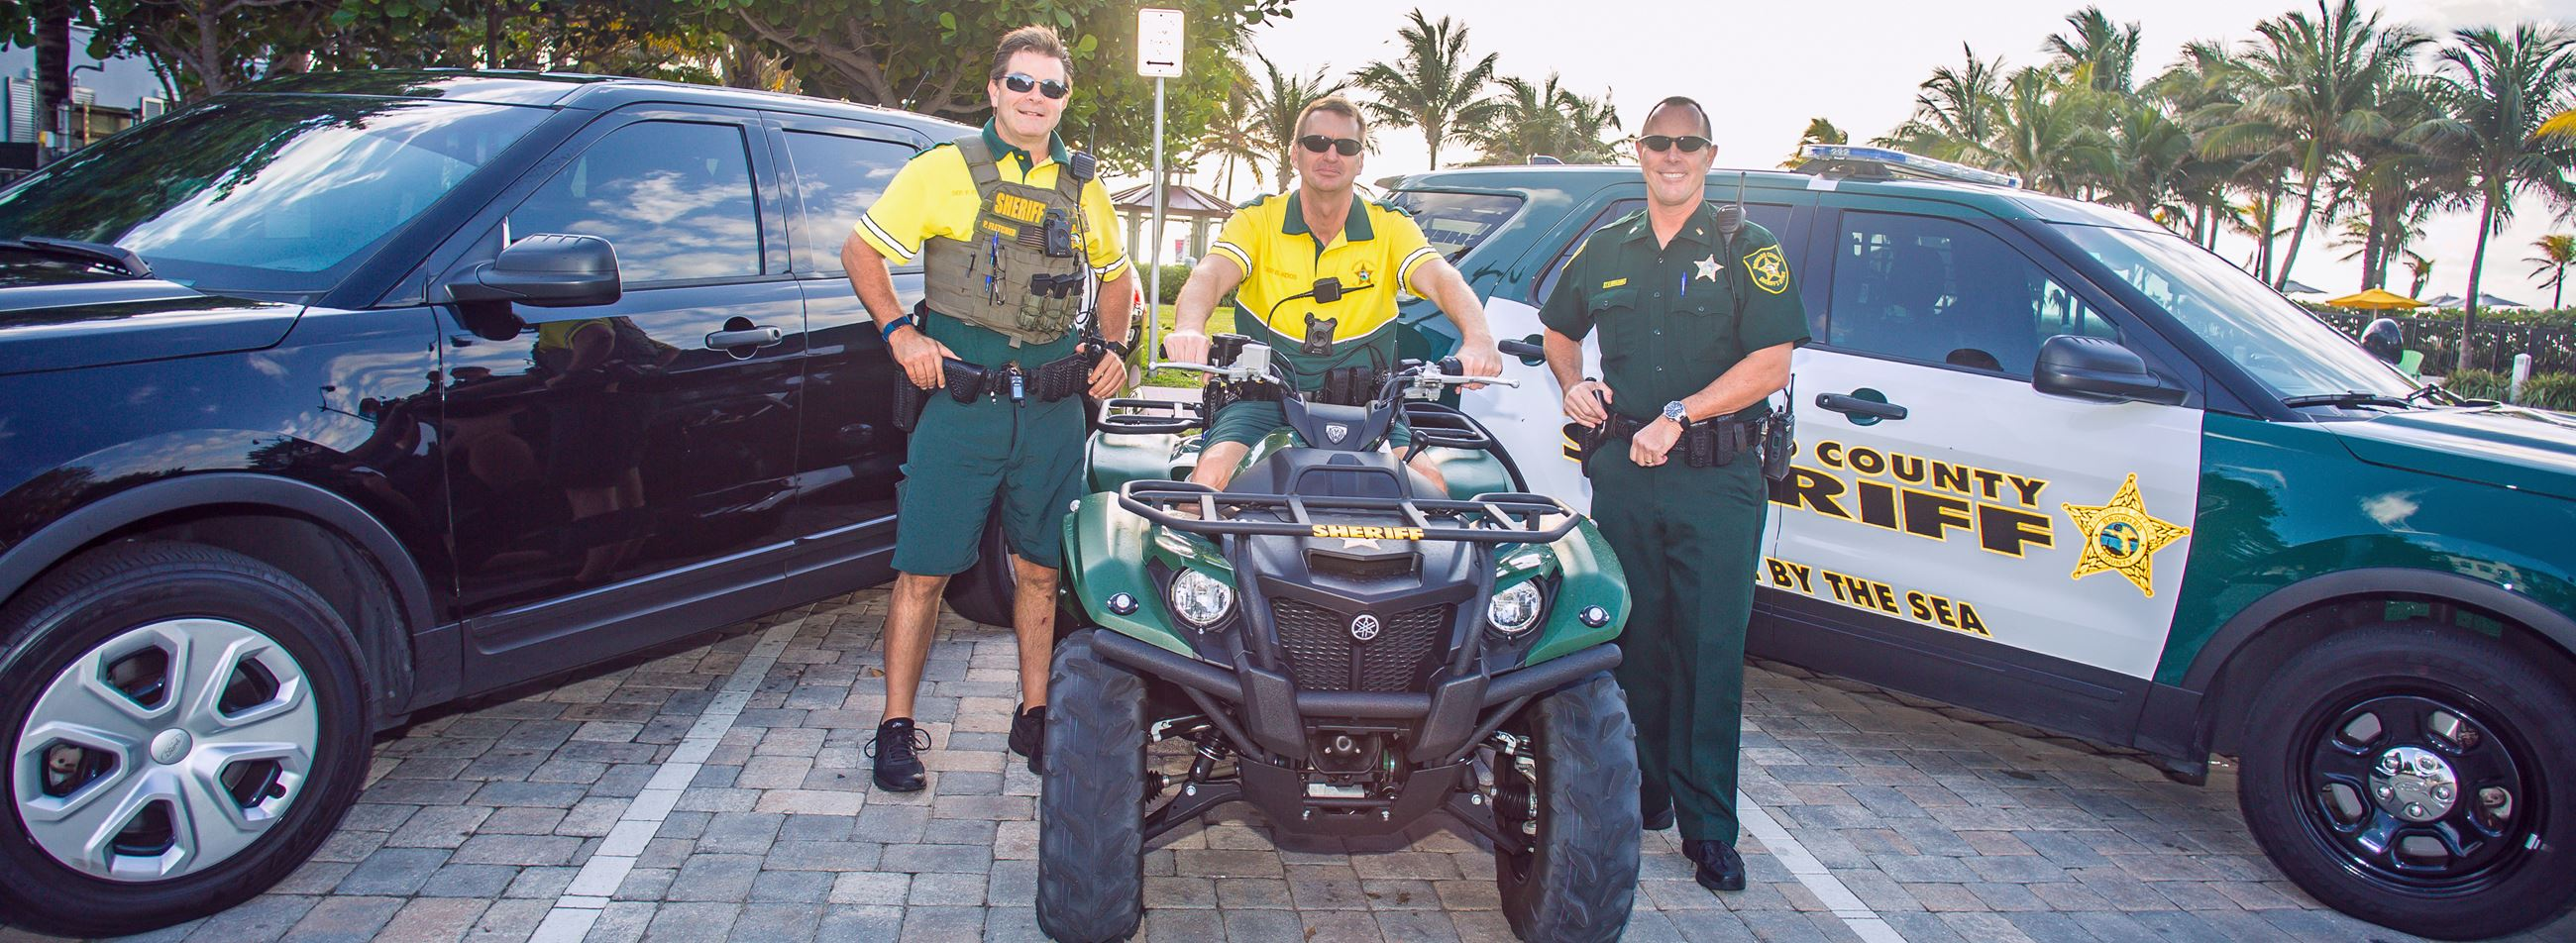 Broward Sheriff's Office | Lauderdale-By-The-Sea, FL